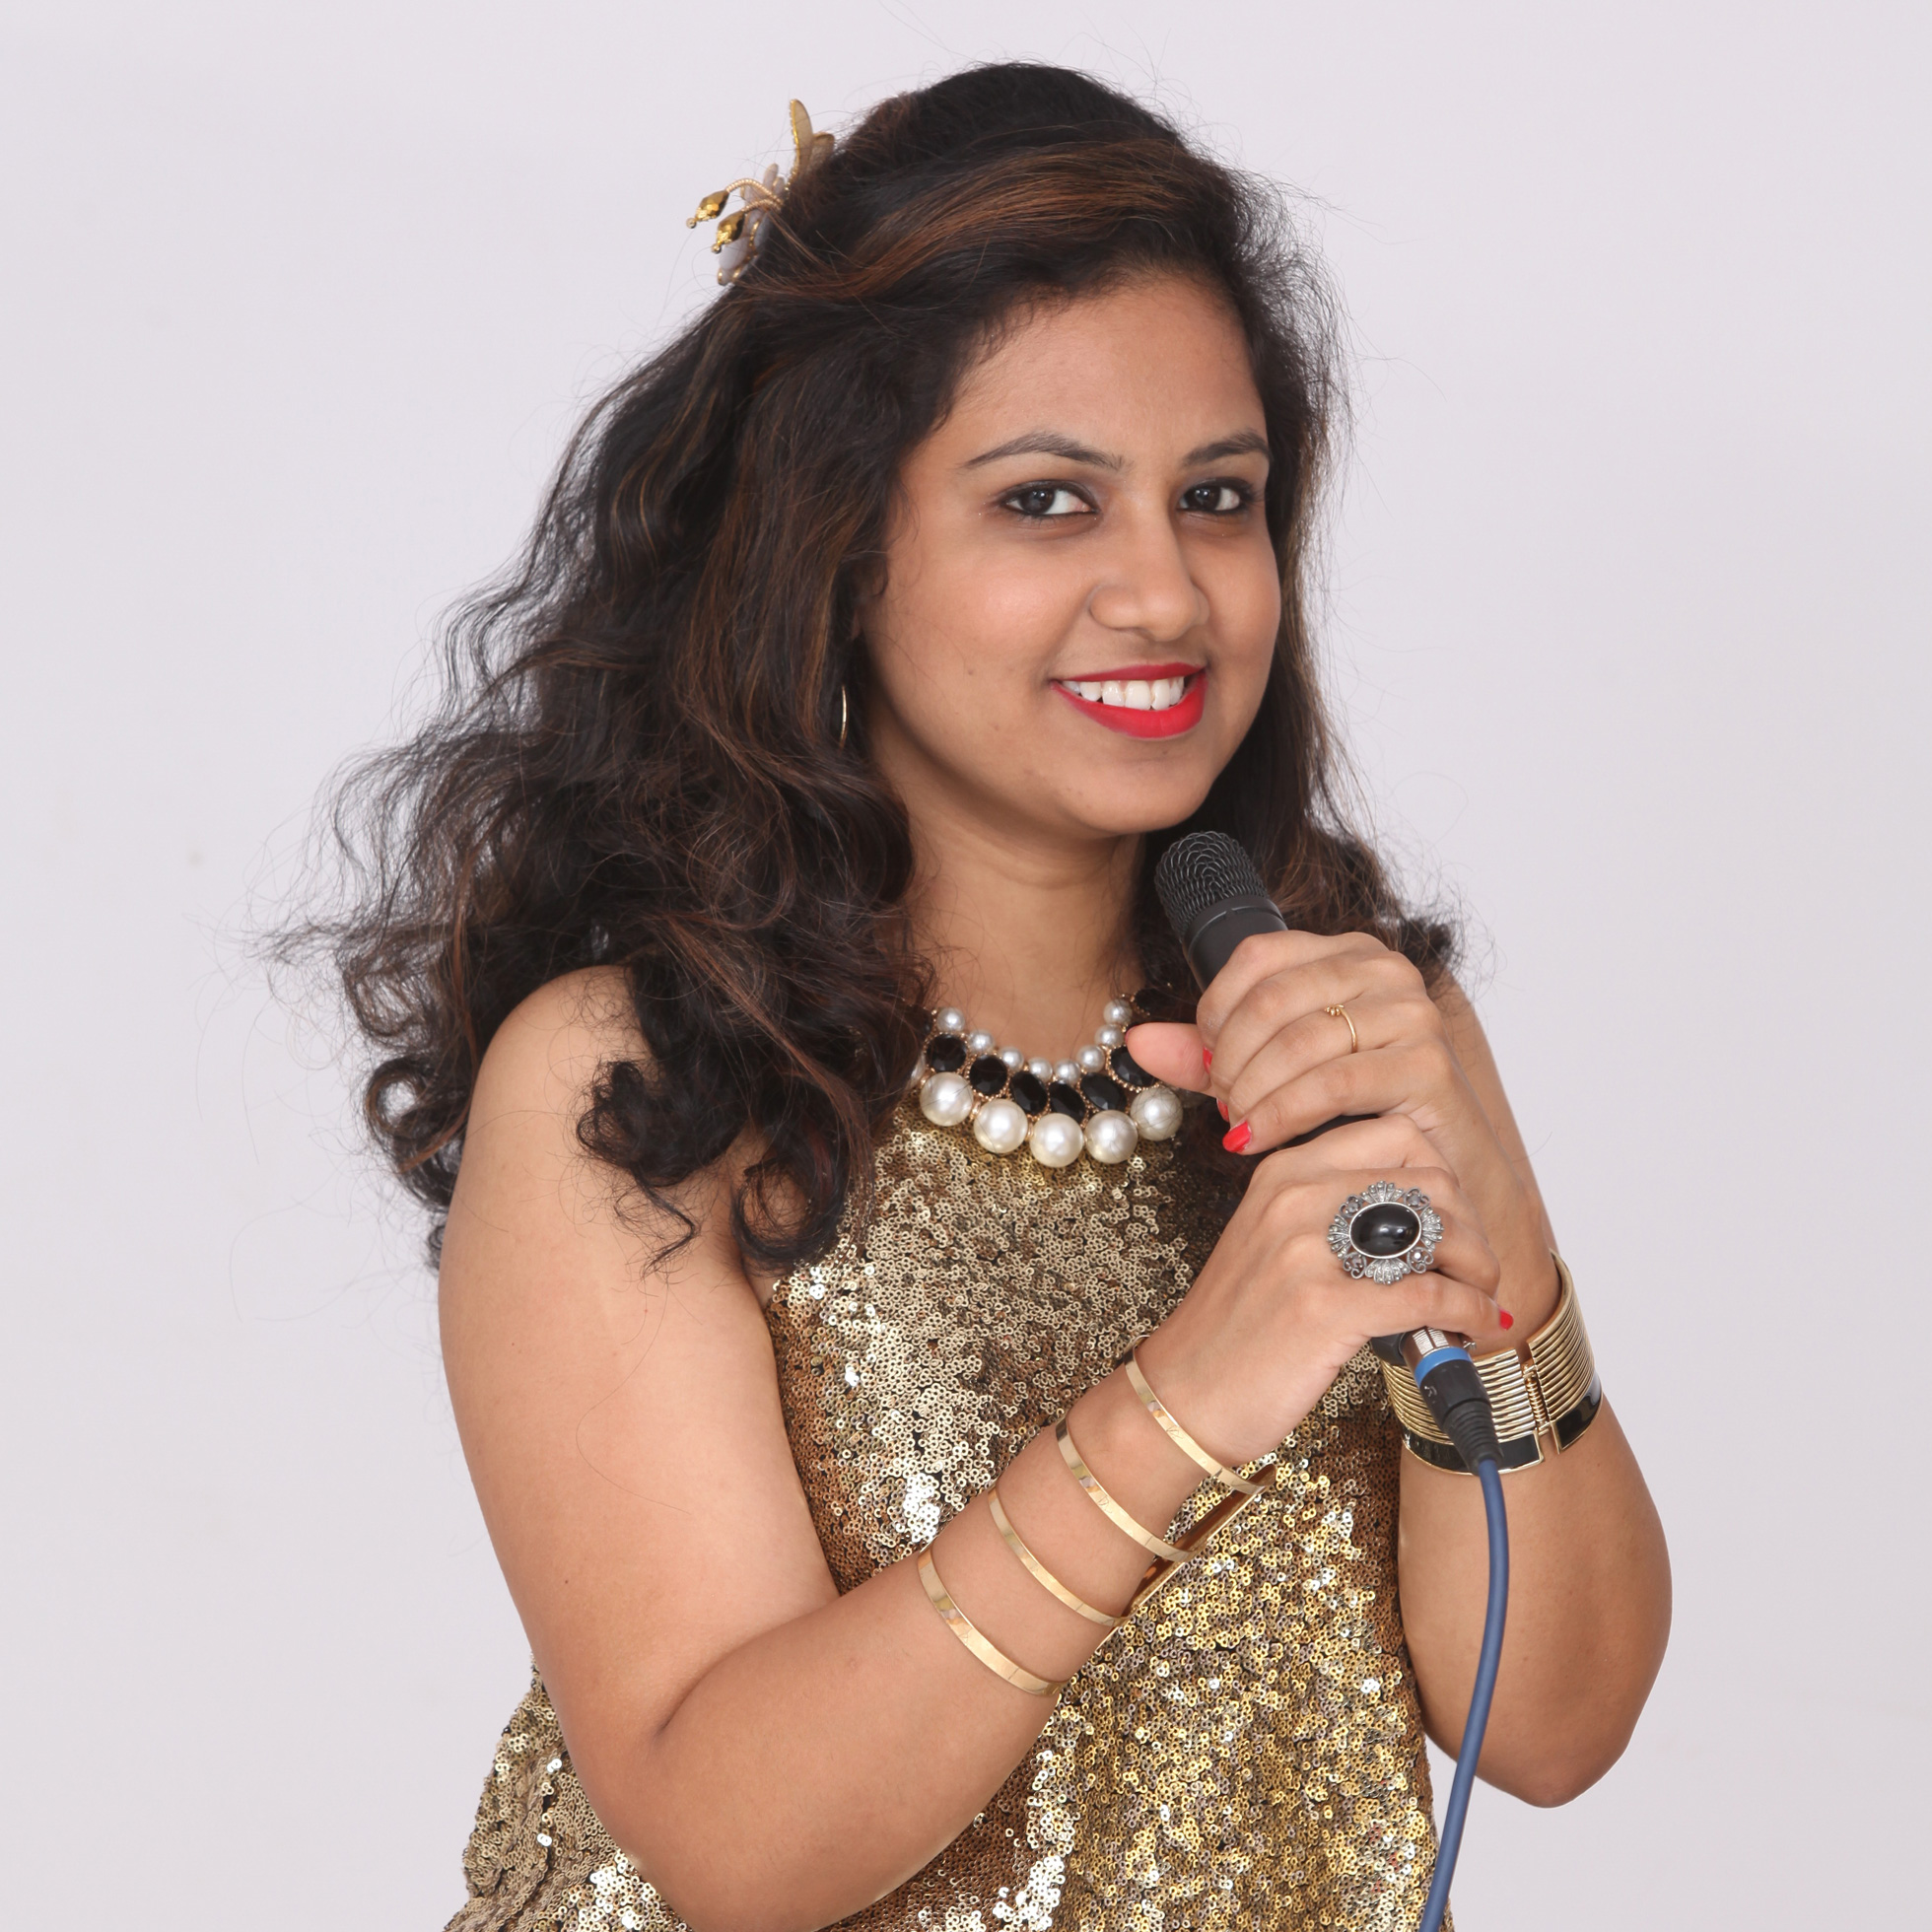 Sohini Mishra Coconut Talent management agency Mumbai